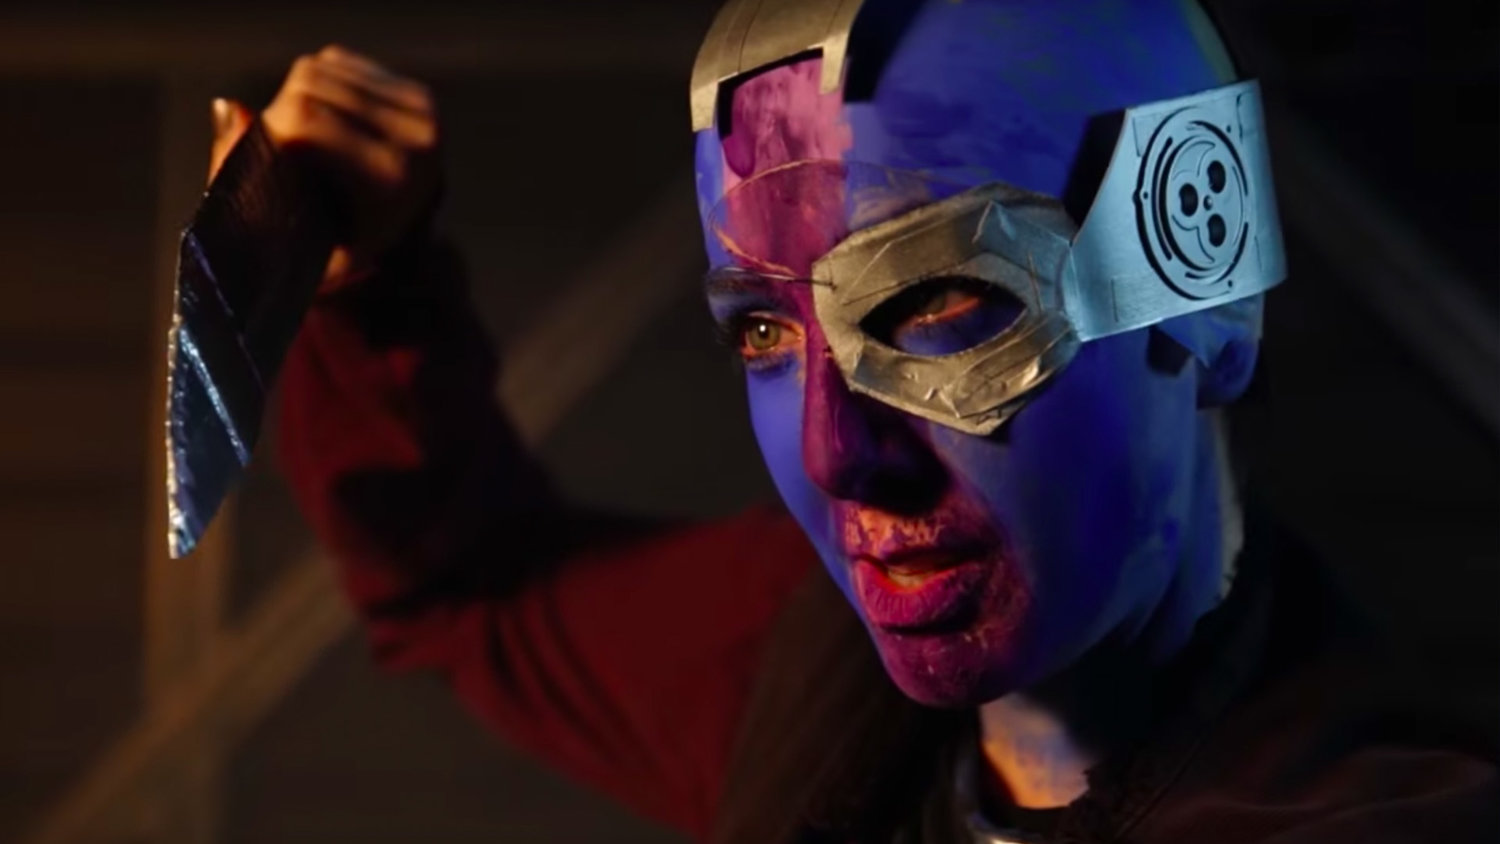 GUARDIANS OF THE GALAXY VOL. 2 Trailer Gets a Homemade Shot for Shot Remake